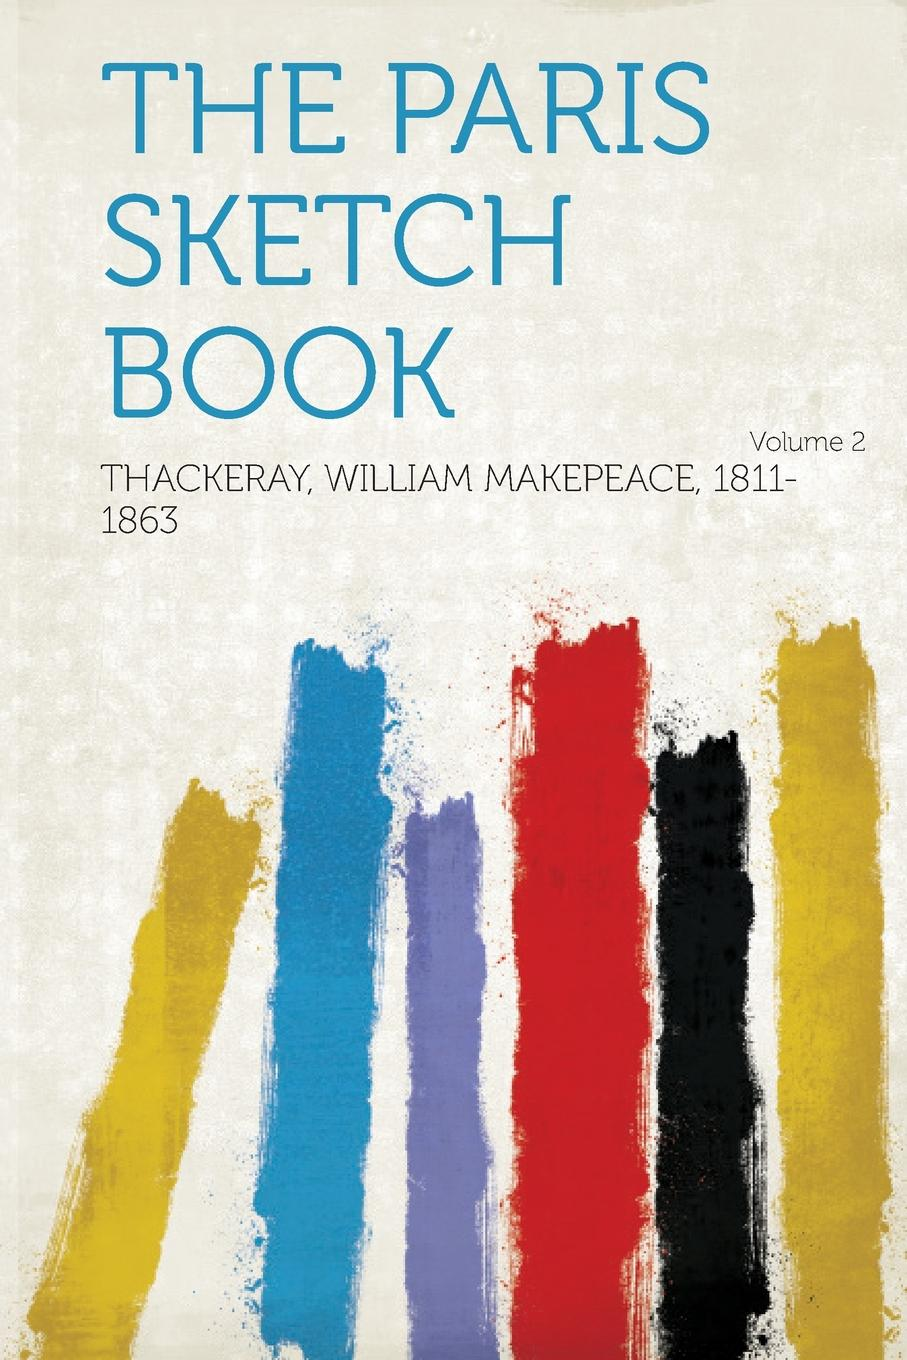 The Paris Sketch Book Volume 2